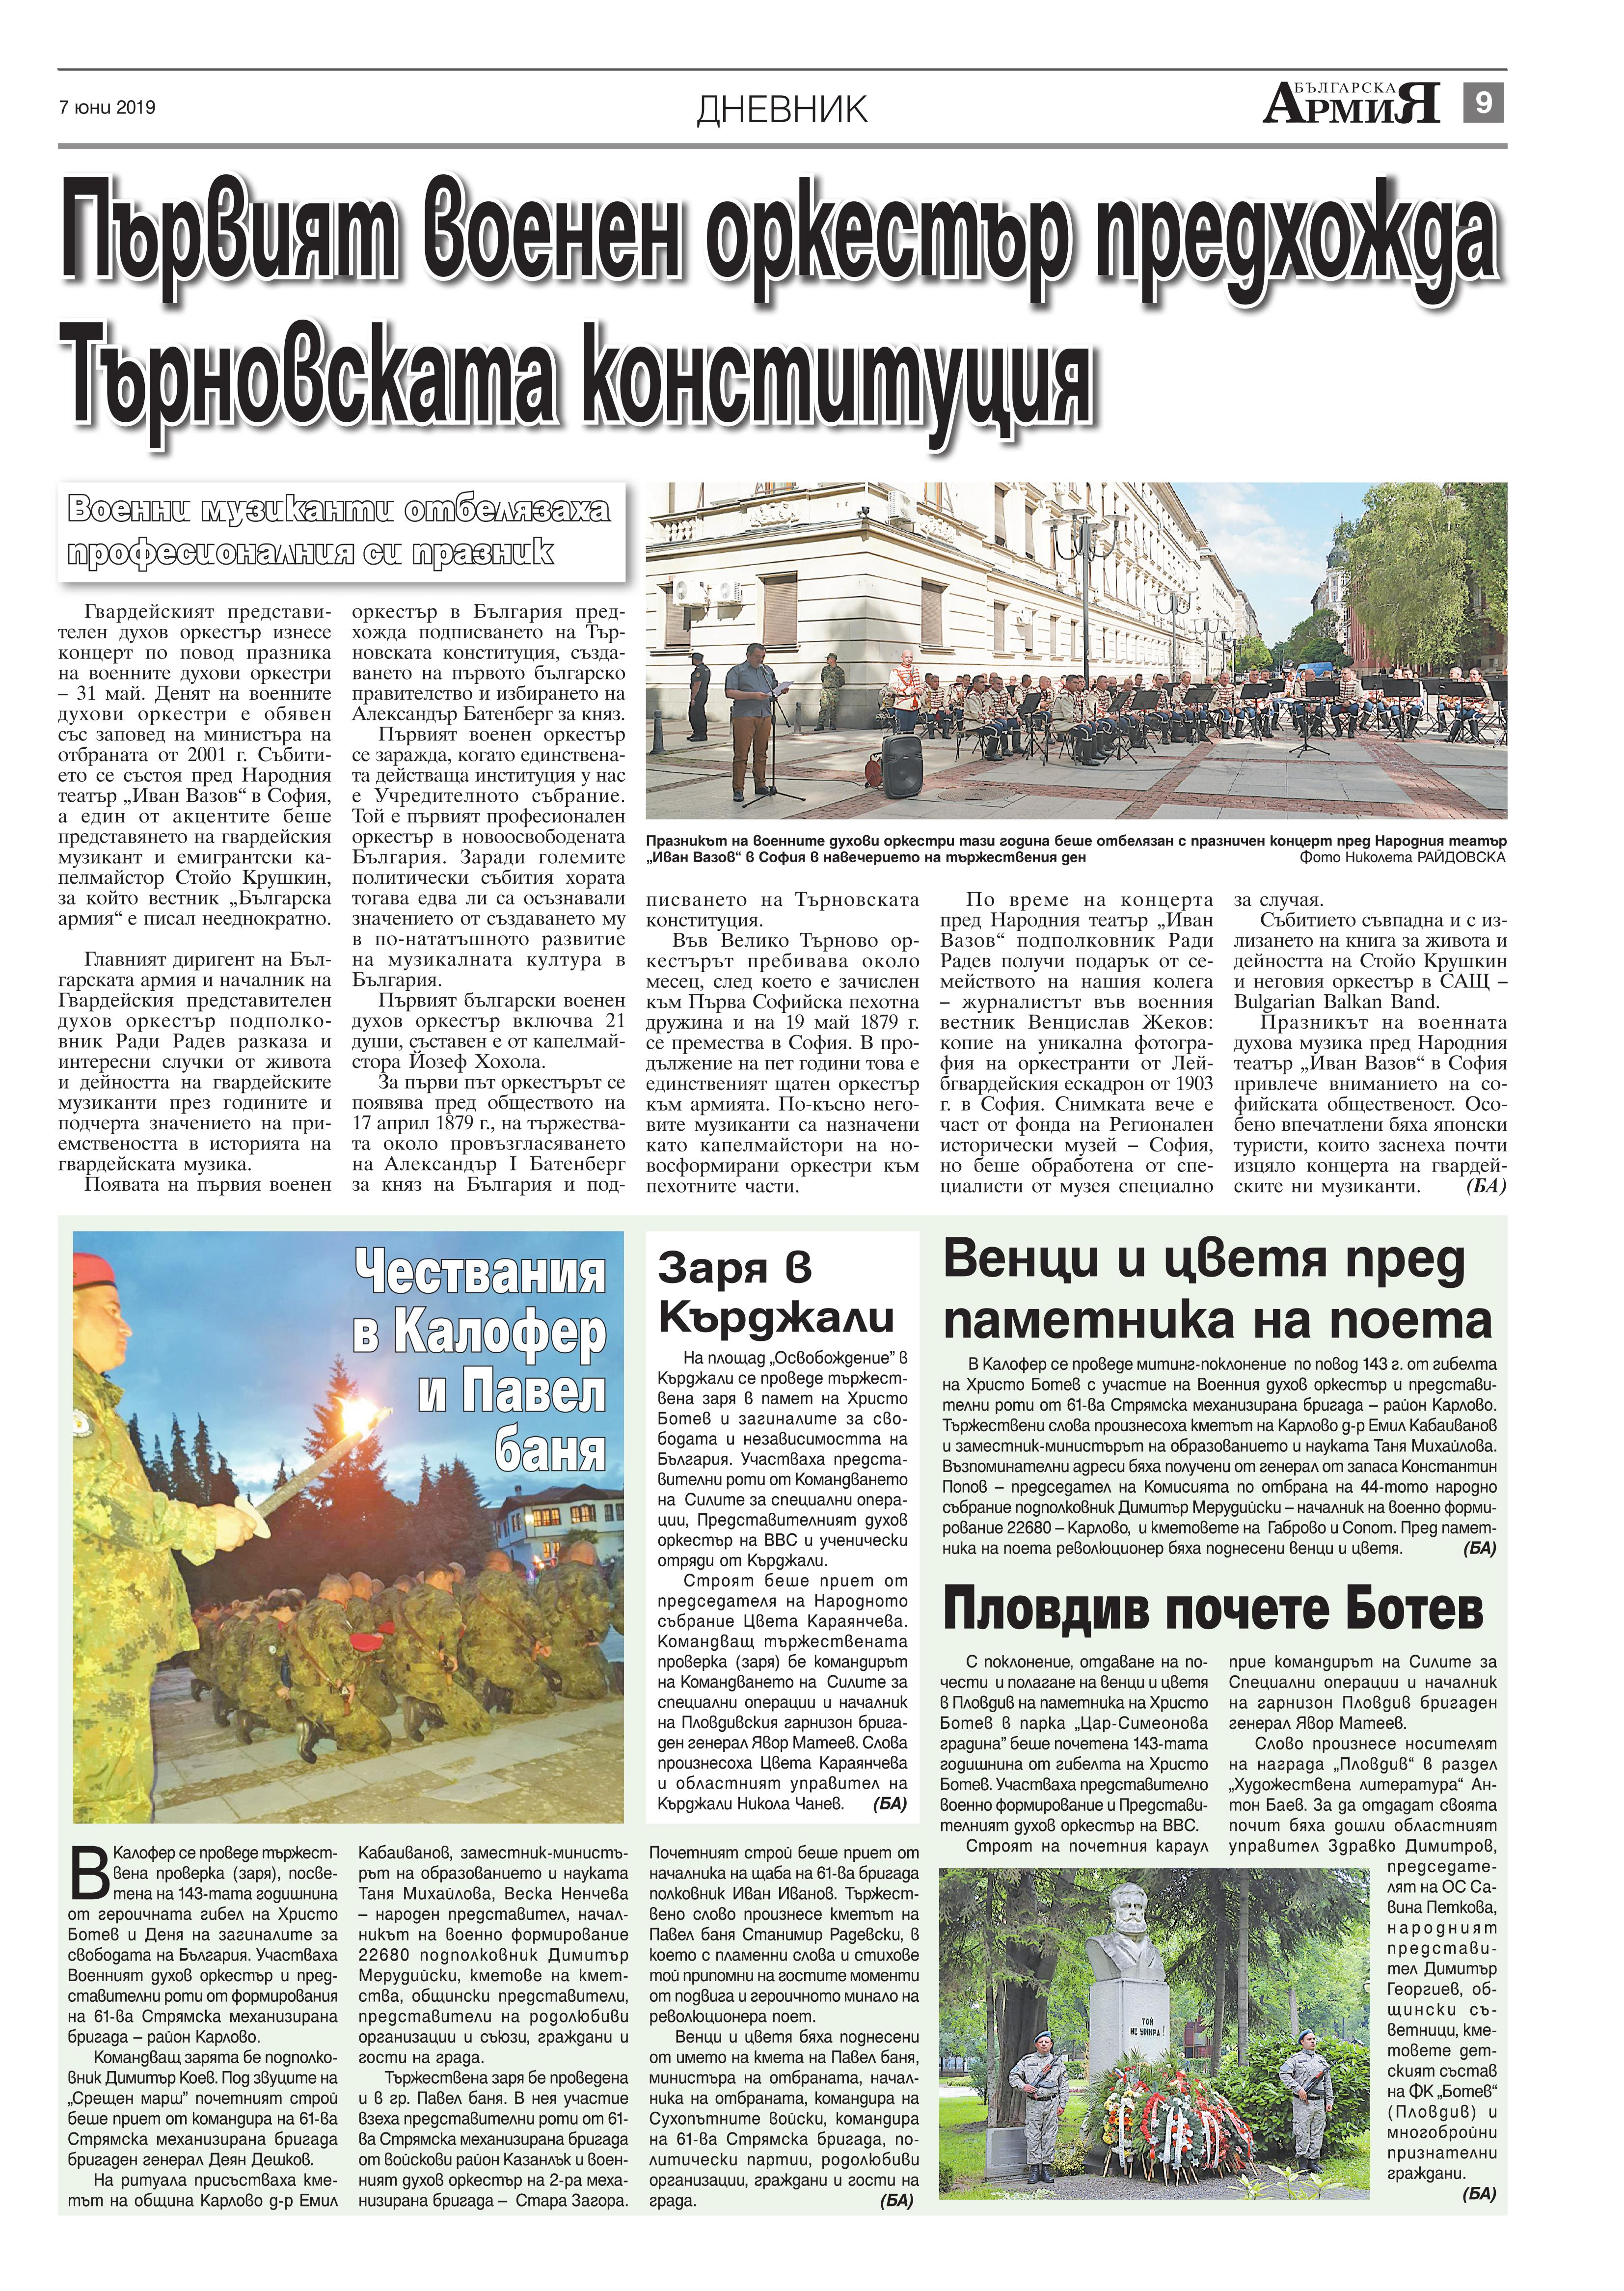 https://www.armymedia.bg/wp-content/uploads/2015/06/09.page1_-96.jpg